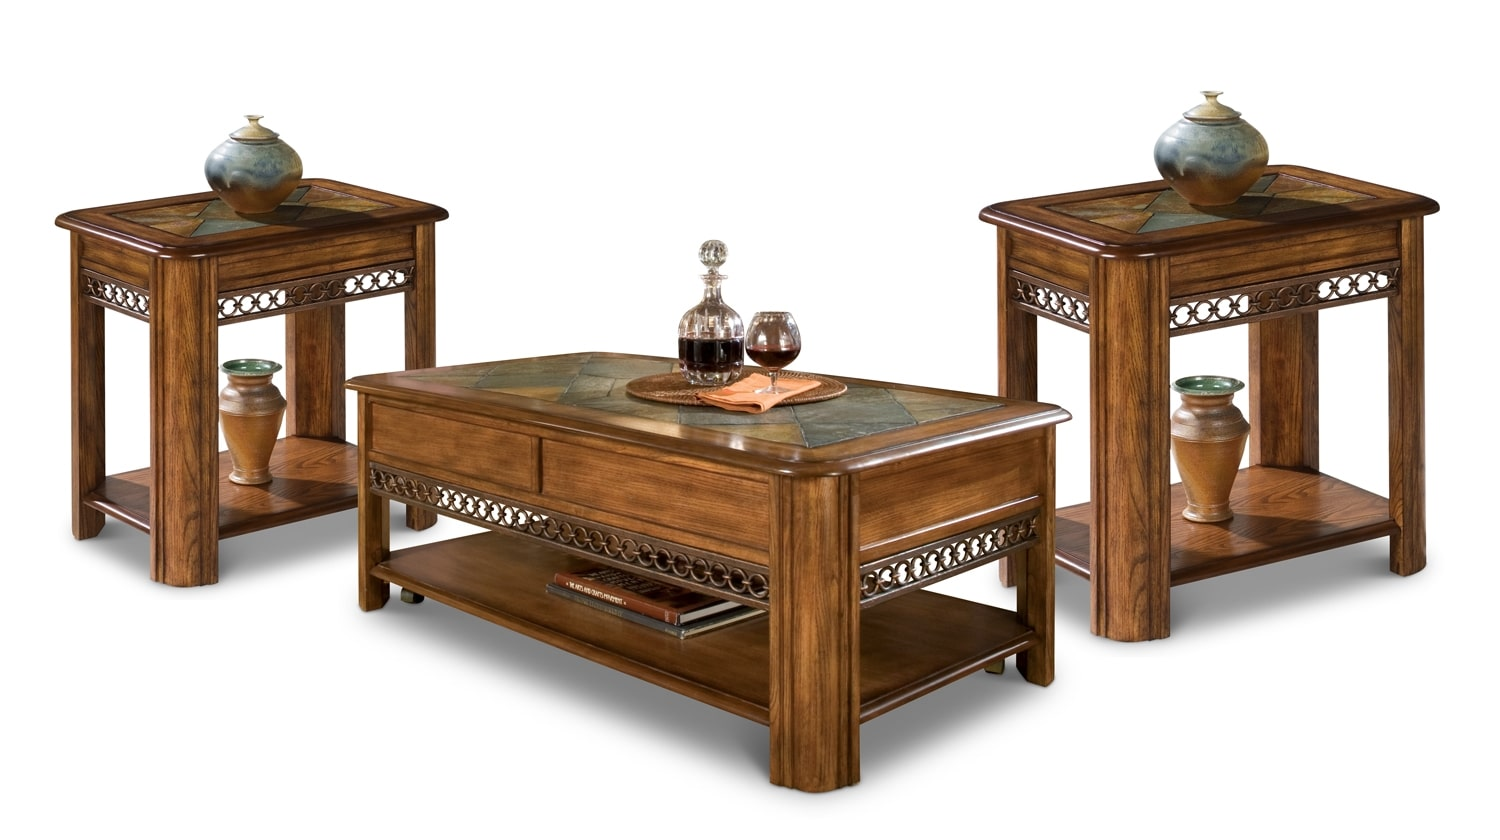 Madison Coffee Table and Two End Tables - Nutmeg